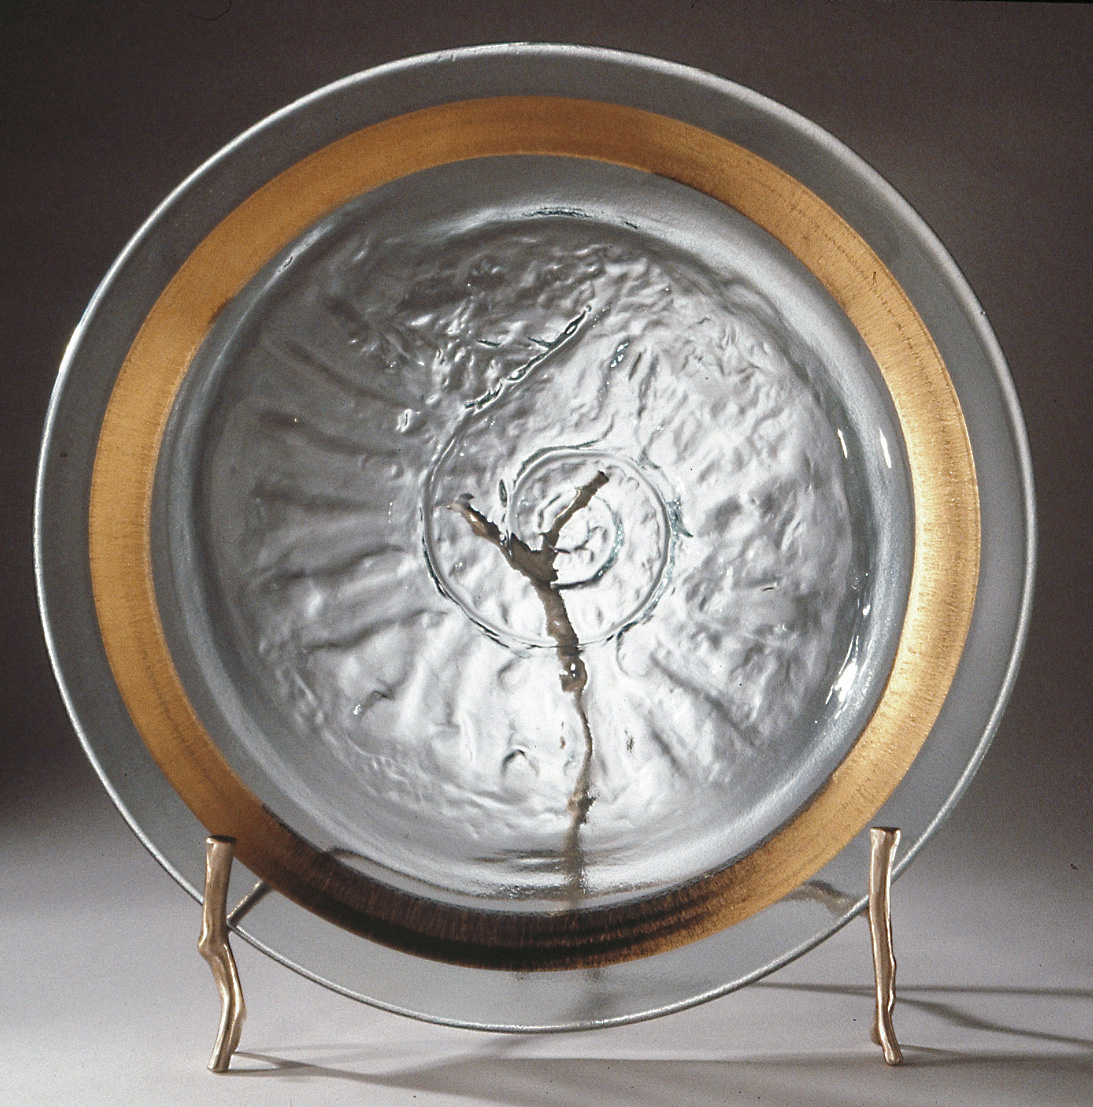 Large Decorative Plate With Stand Accessories Gillberg Design Inc : large decorative plate - pezcame.com